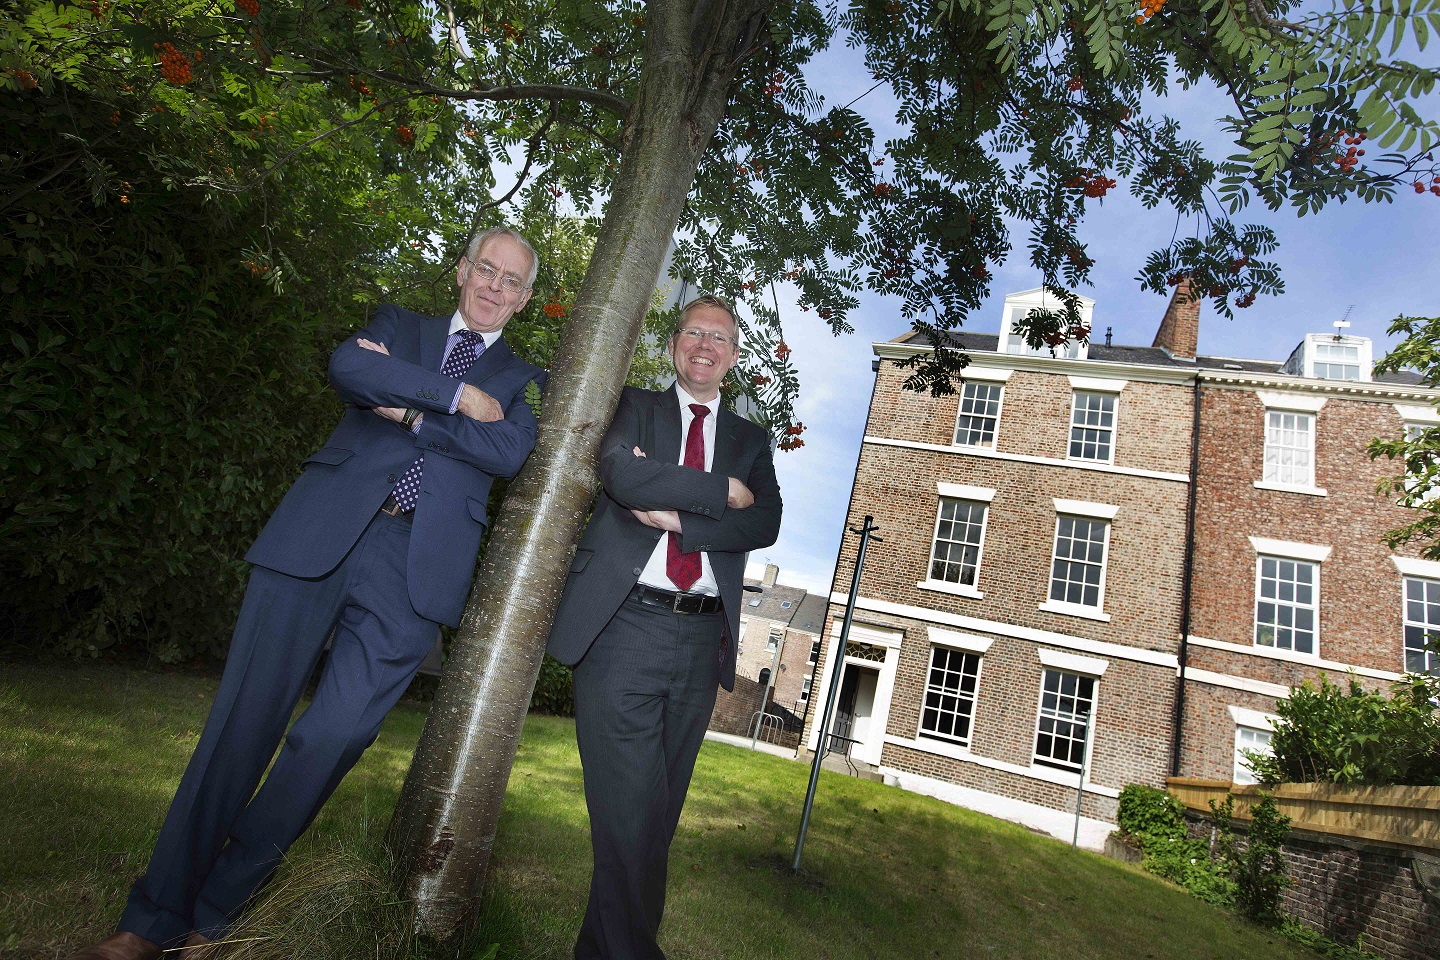 Chair of Leazes Homes, Bill Midgley and Leader of Newcastle City Council, Cllr Nick Forbes, outside Summerhill apartments